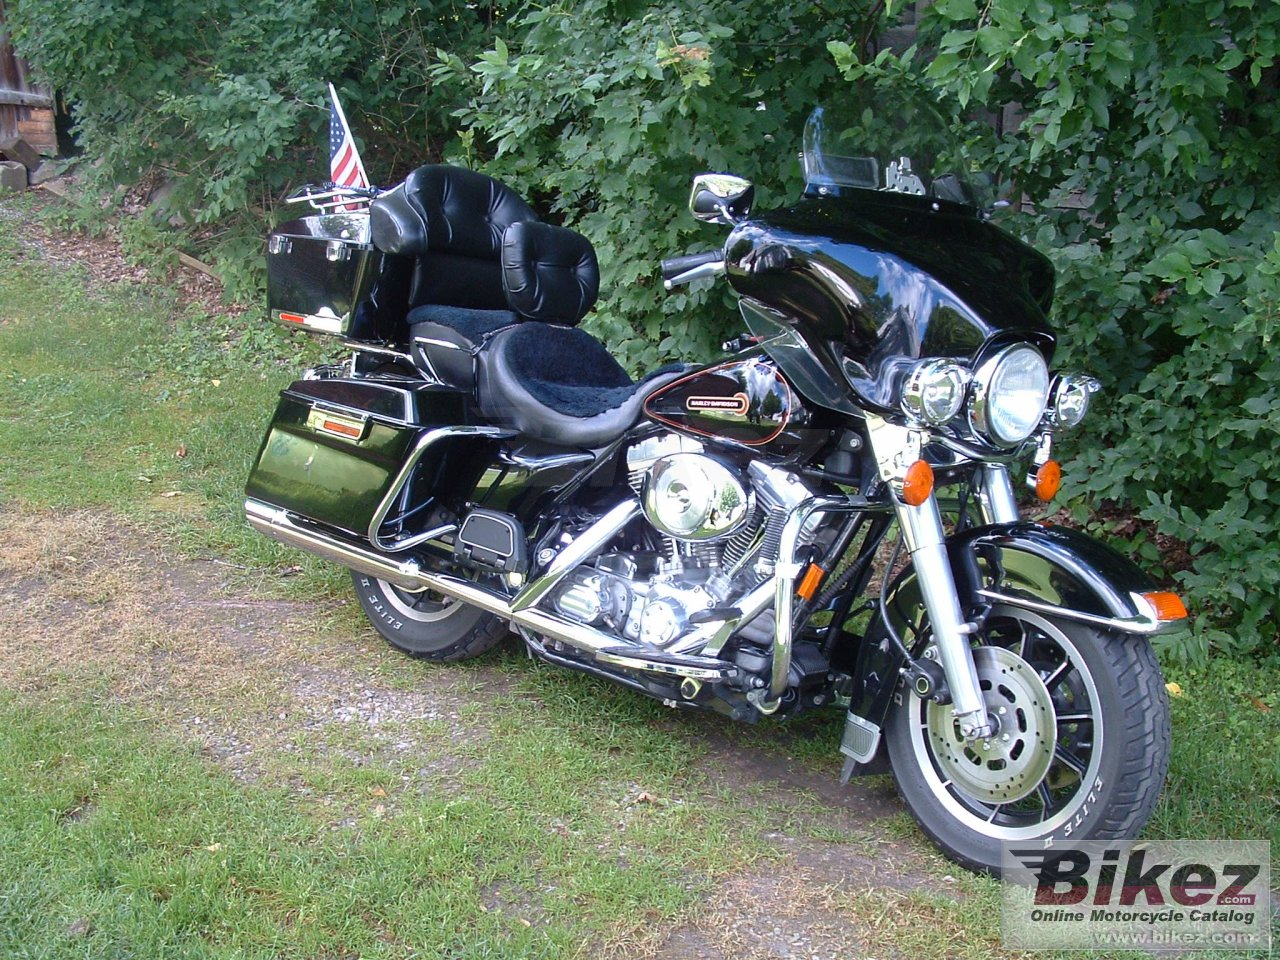 Big  flht electra glide standard picture and wallpaper from Bikez.com